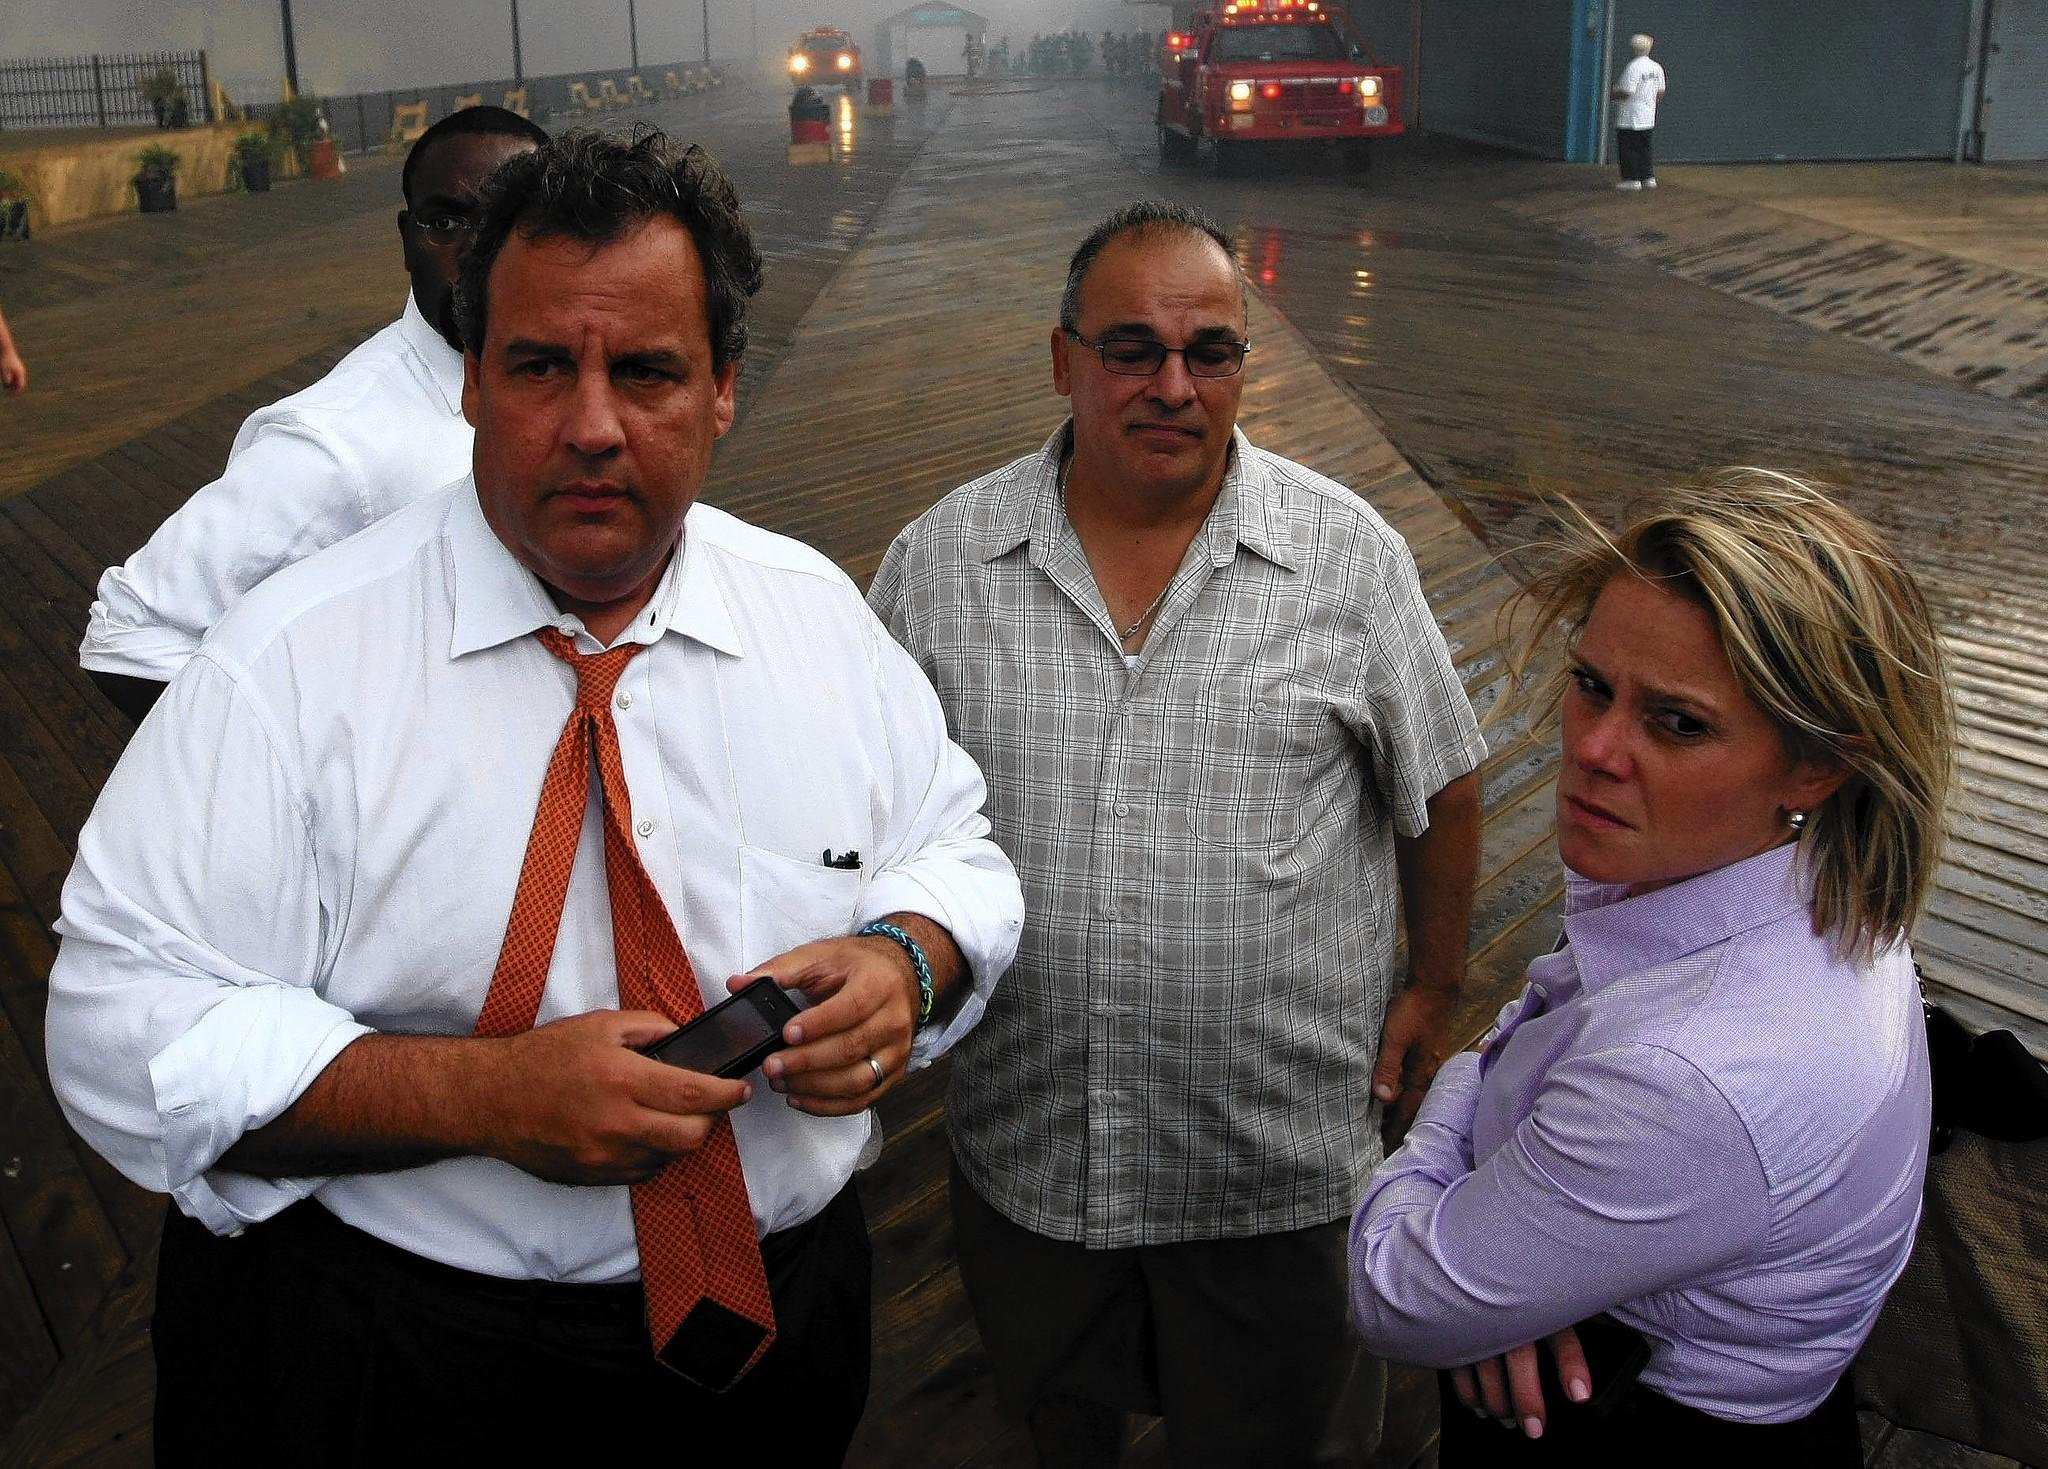 New Jersey Gov. Chris Christie and aide Bridget Anne Kelly are among officials visiting the Seaside Heights boardwalk after a fire in September.